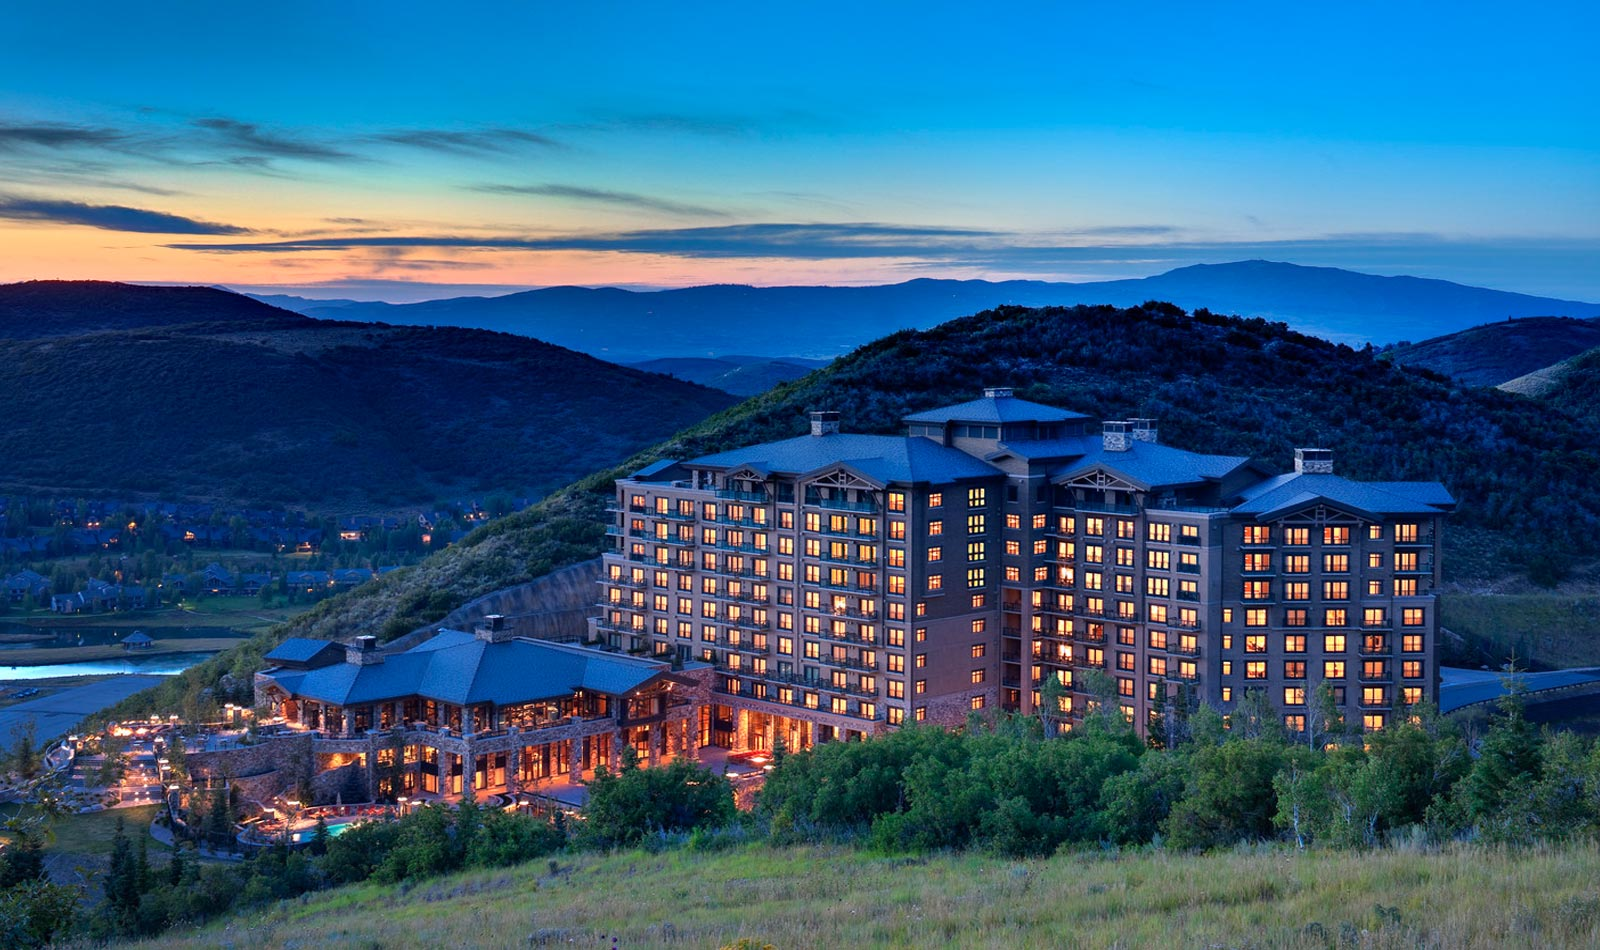 The St. Regis Deer Valley - Deer Valley Resort